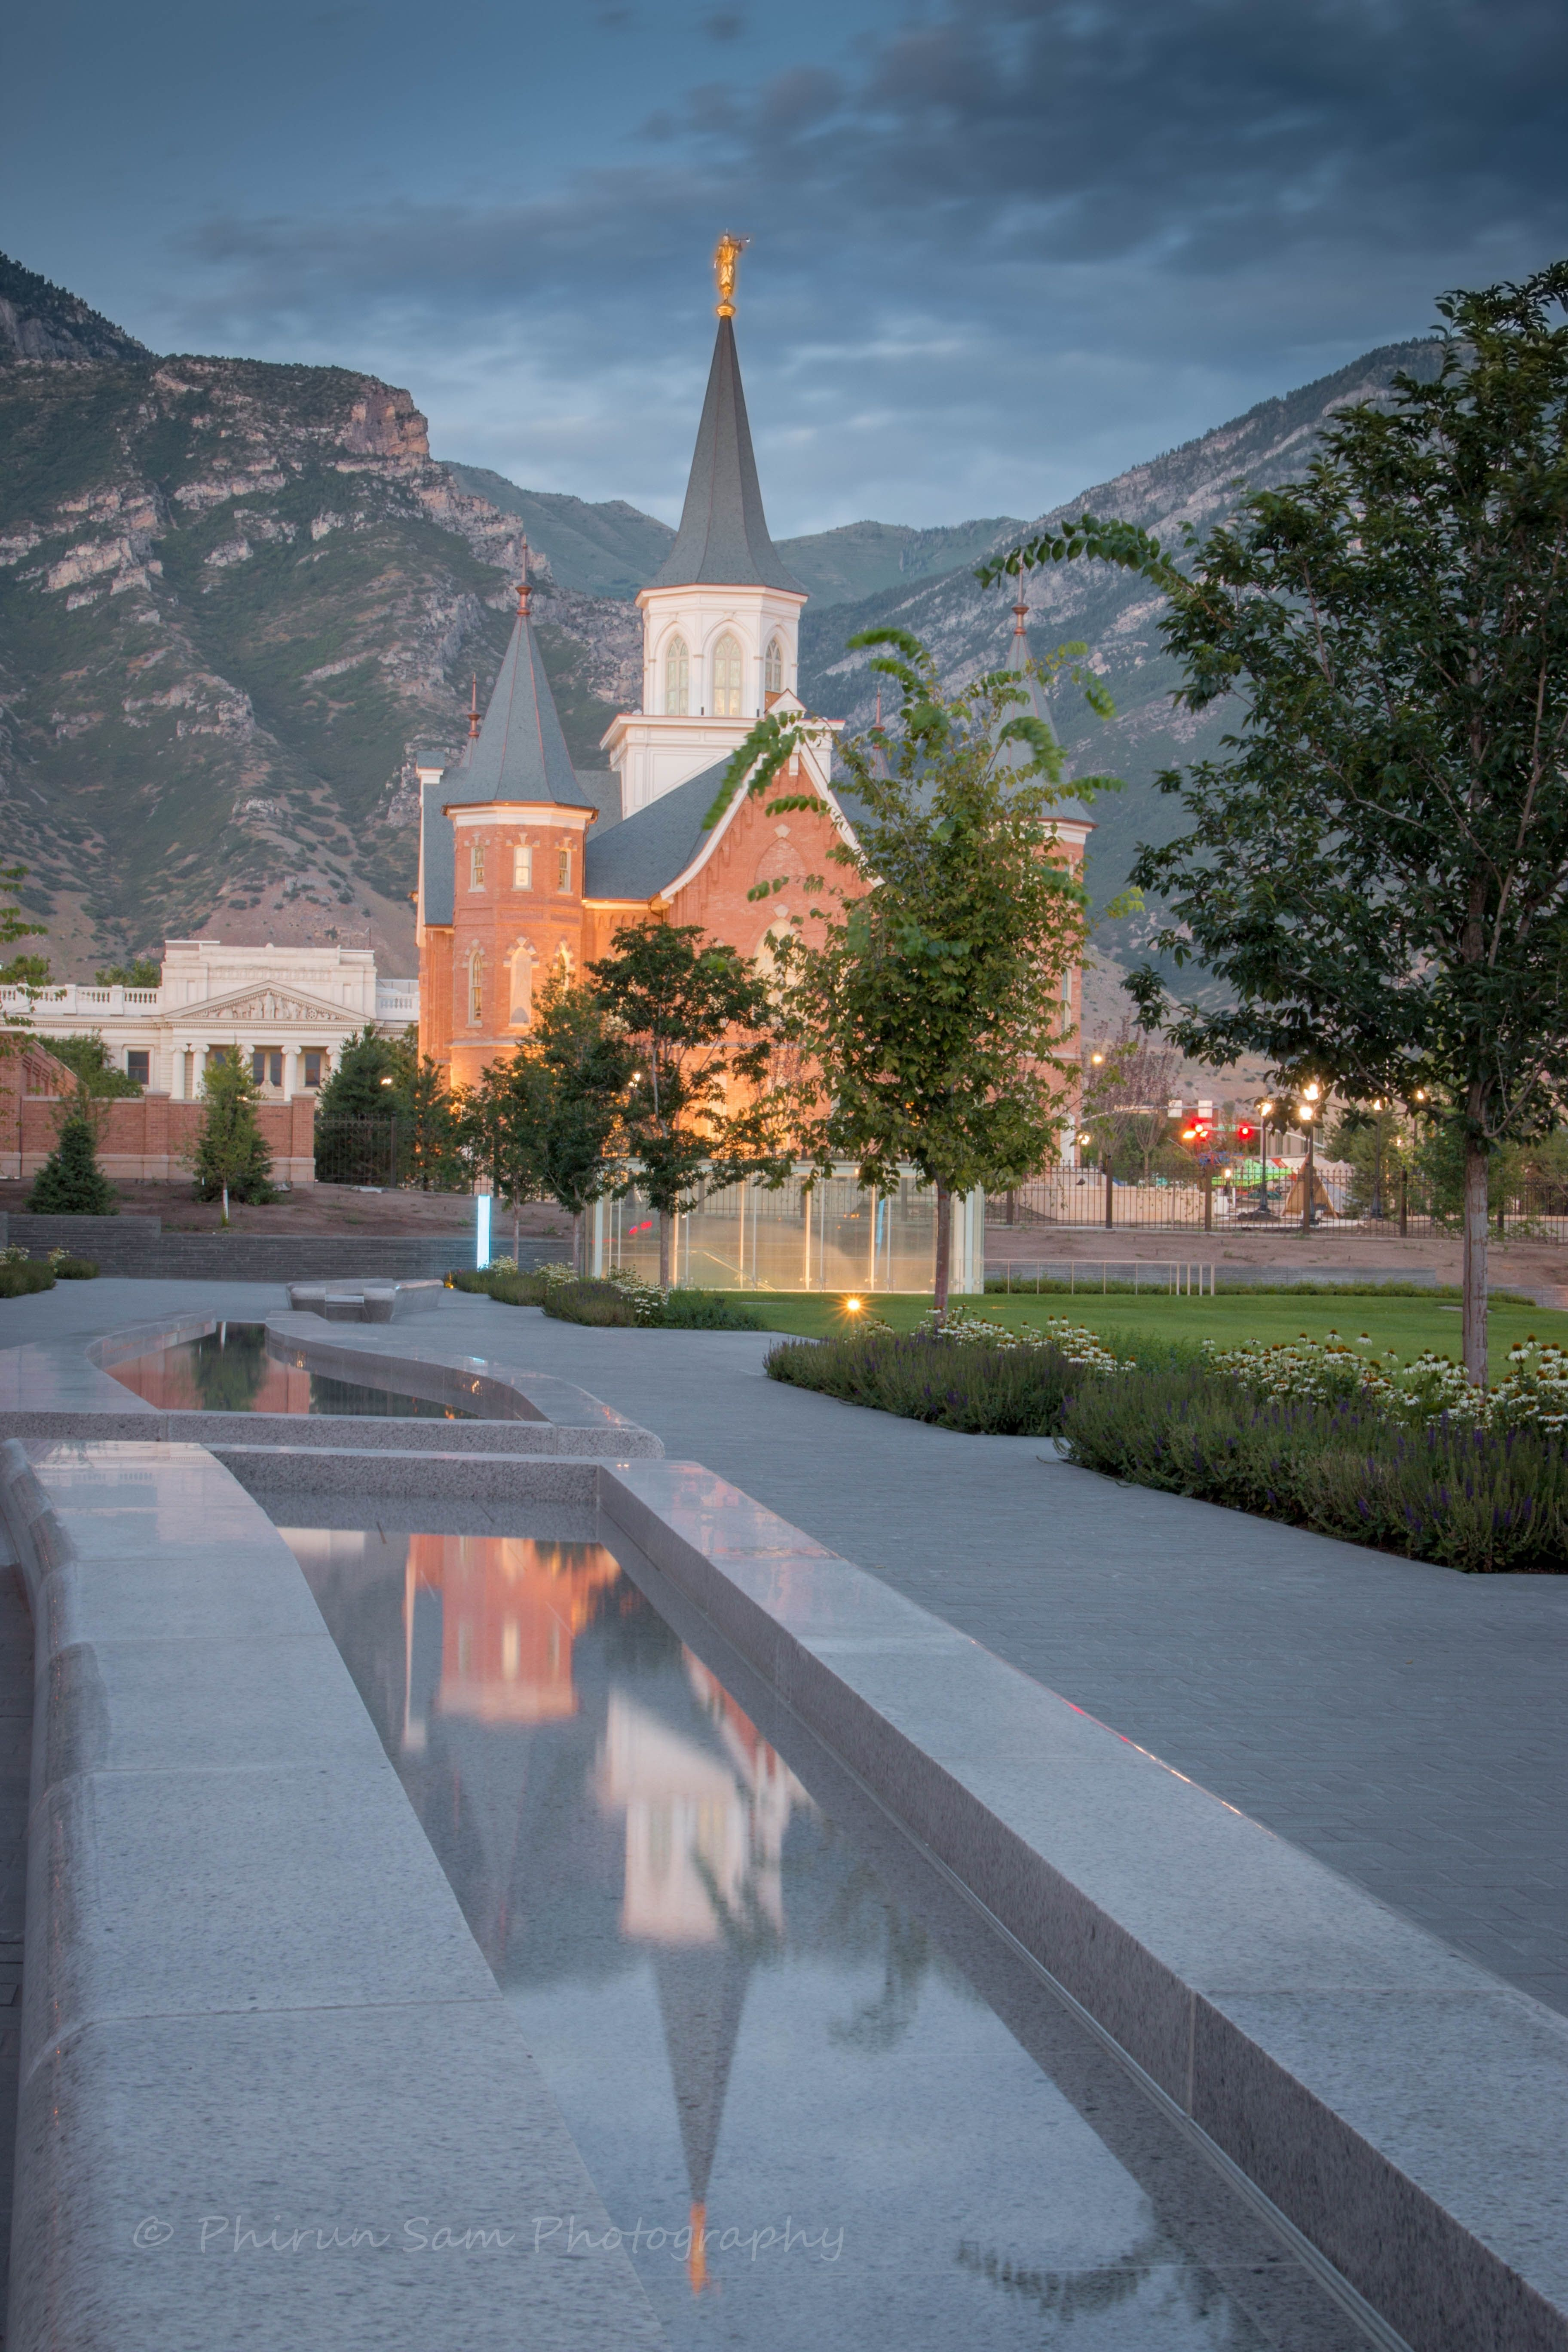 Reflecting pools and trees outside the Provo City Center Temple.